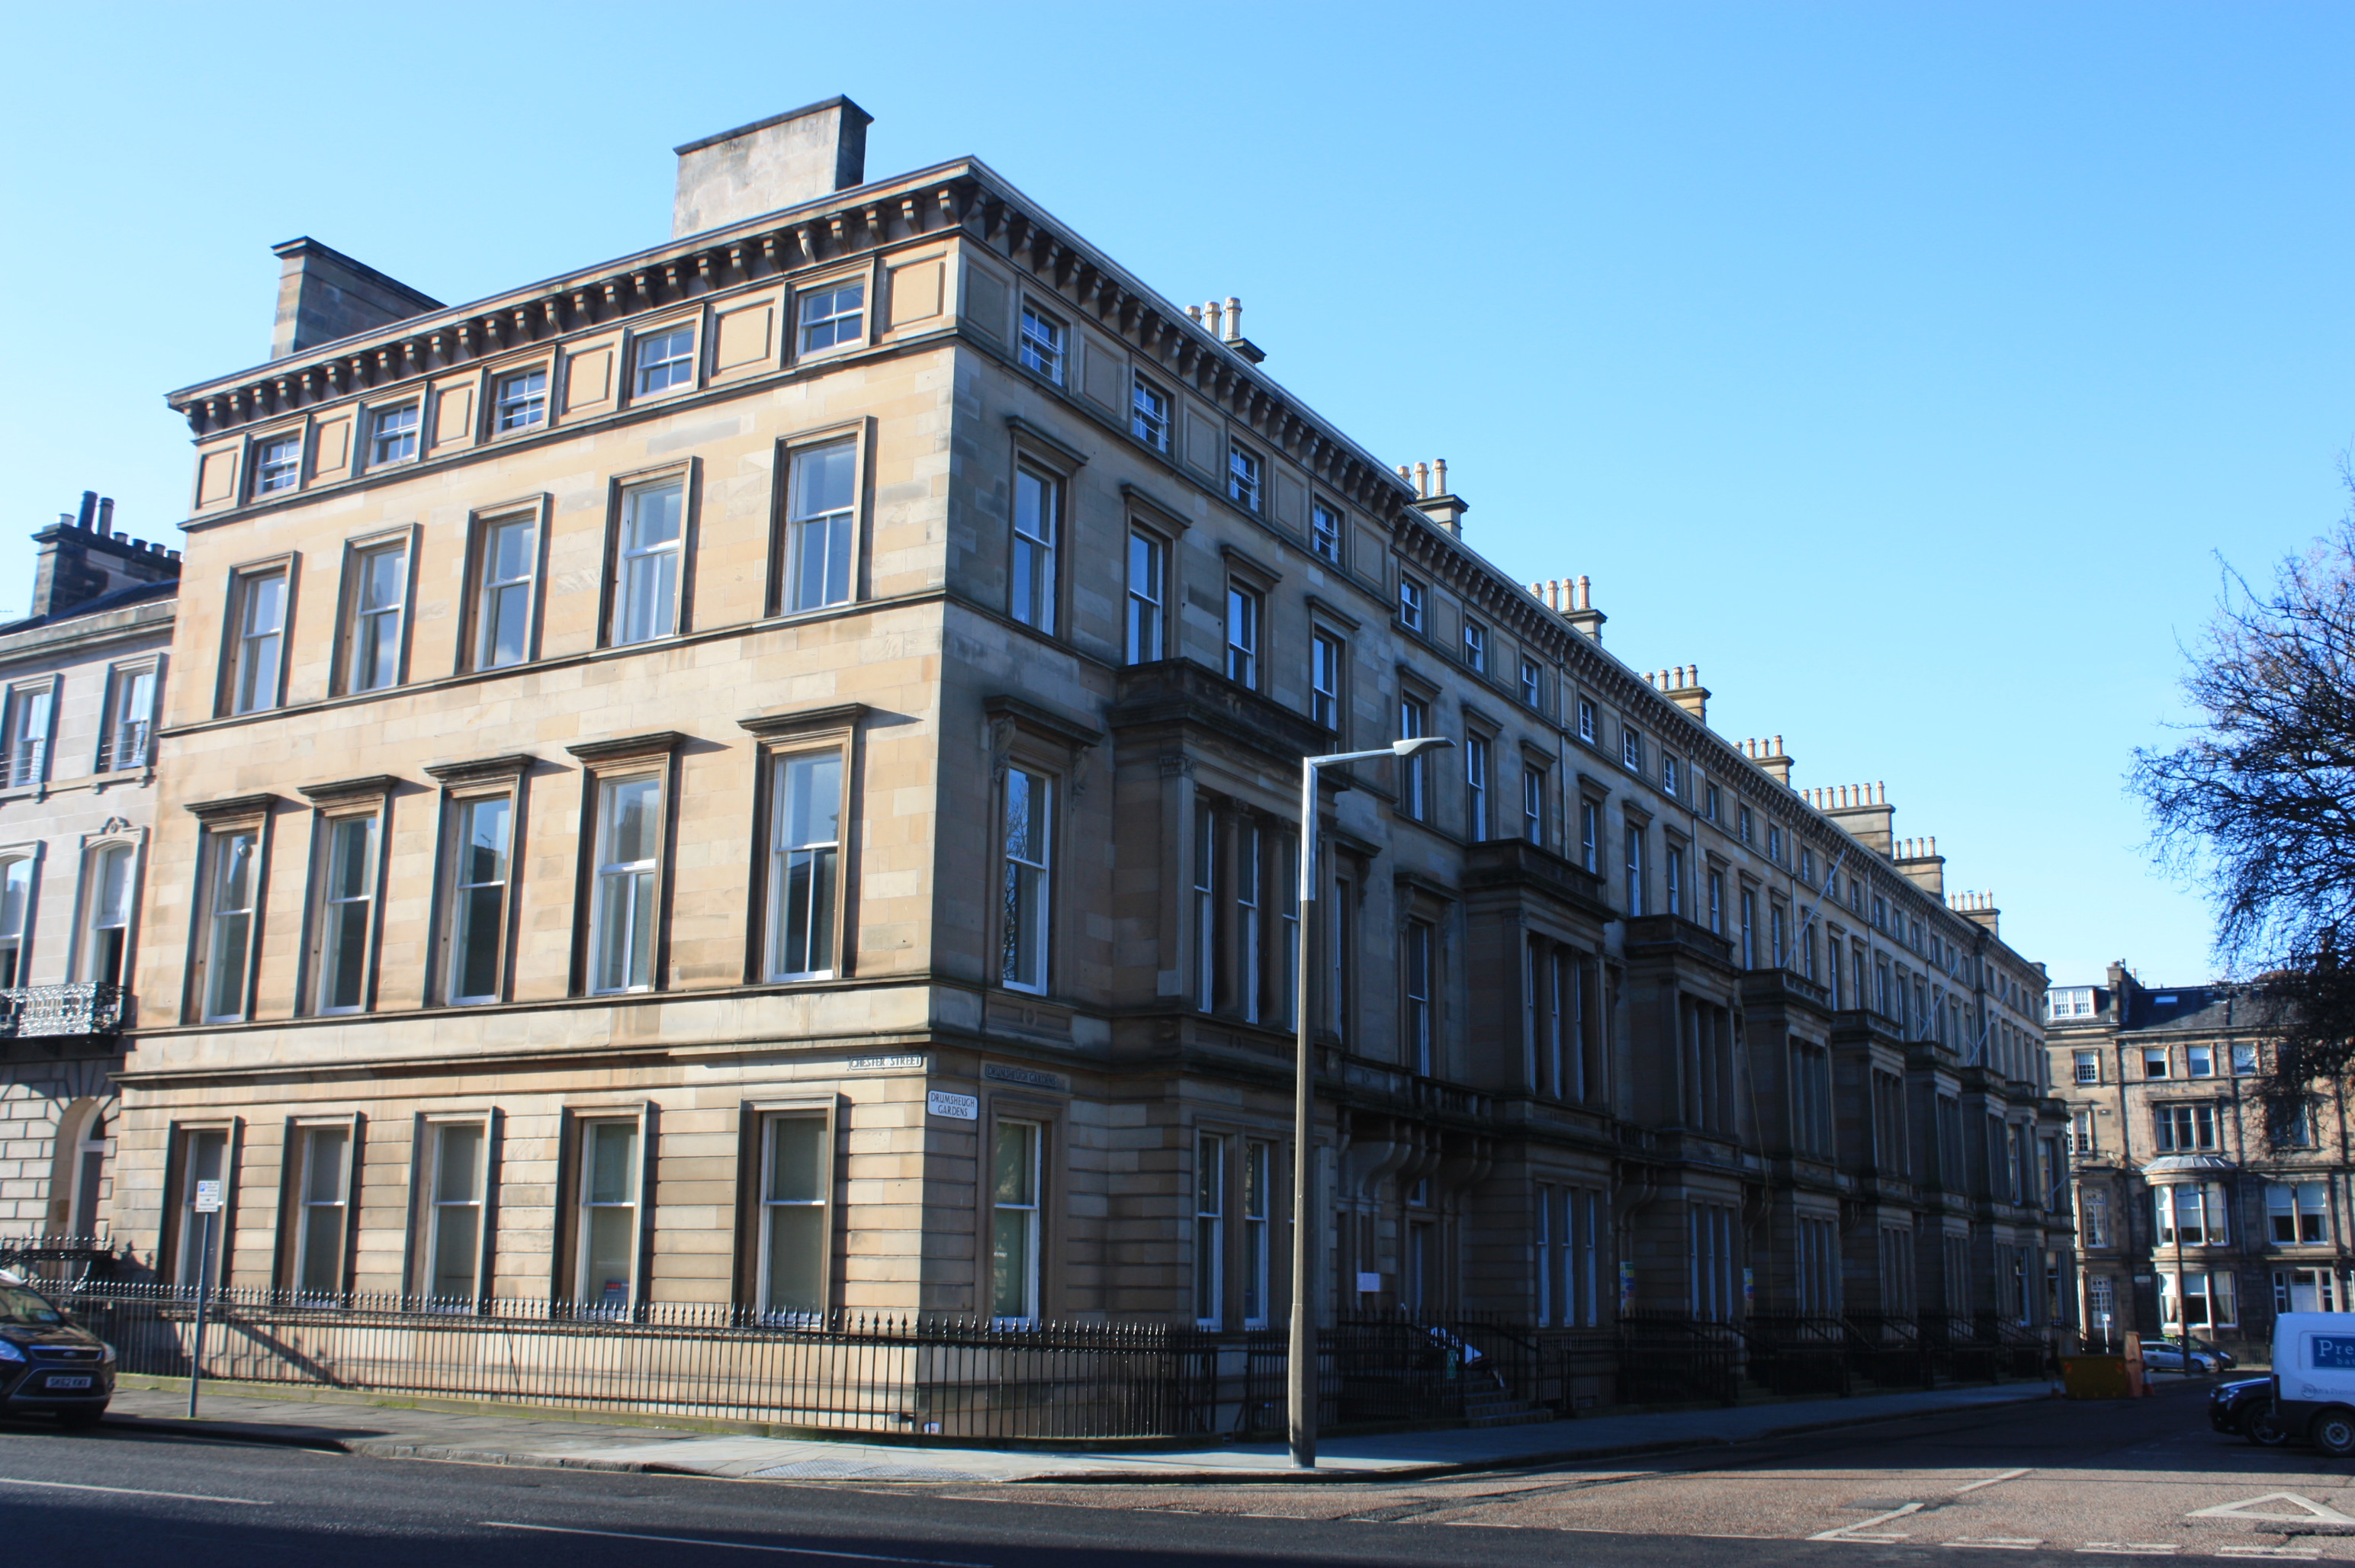 Charles kinnear wiki everipedia for 37 royal terrace edinburgh